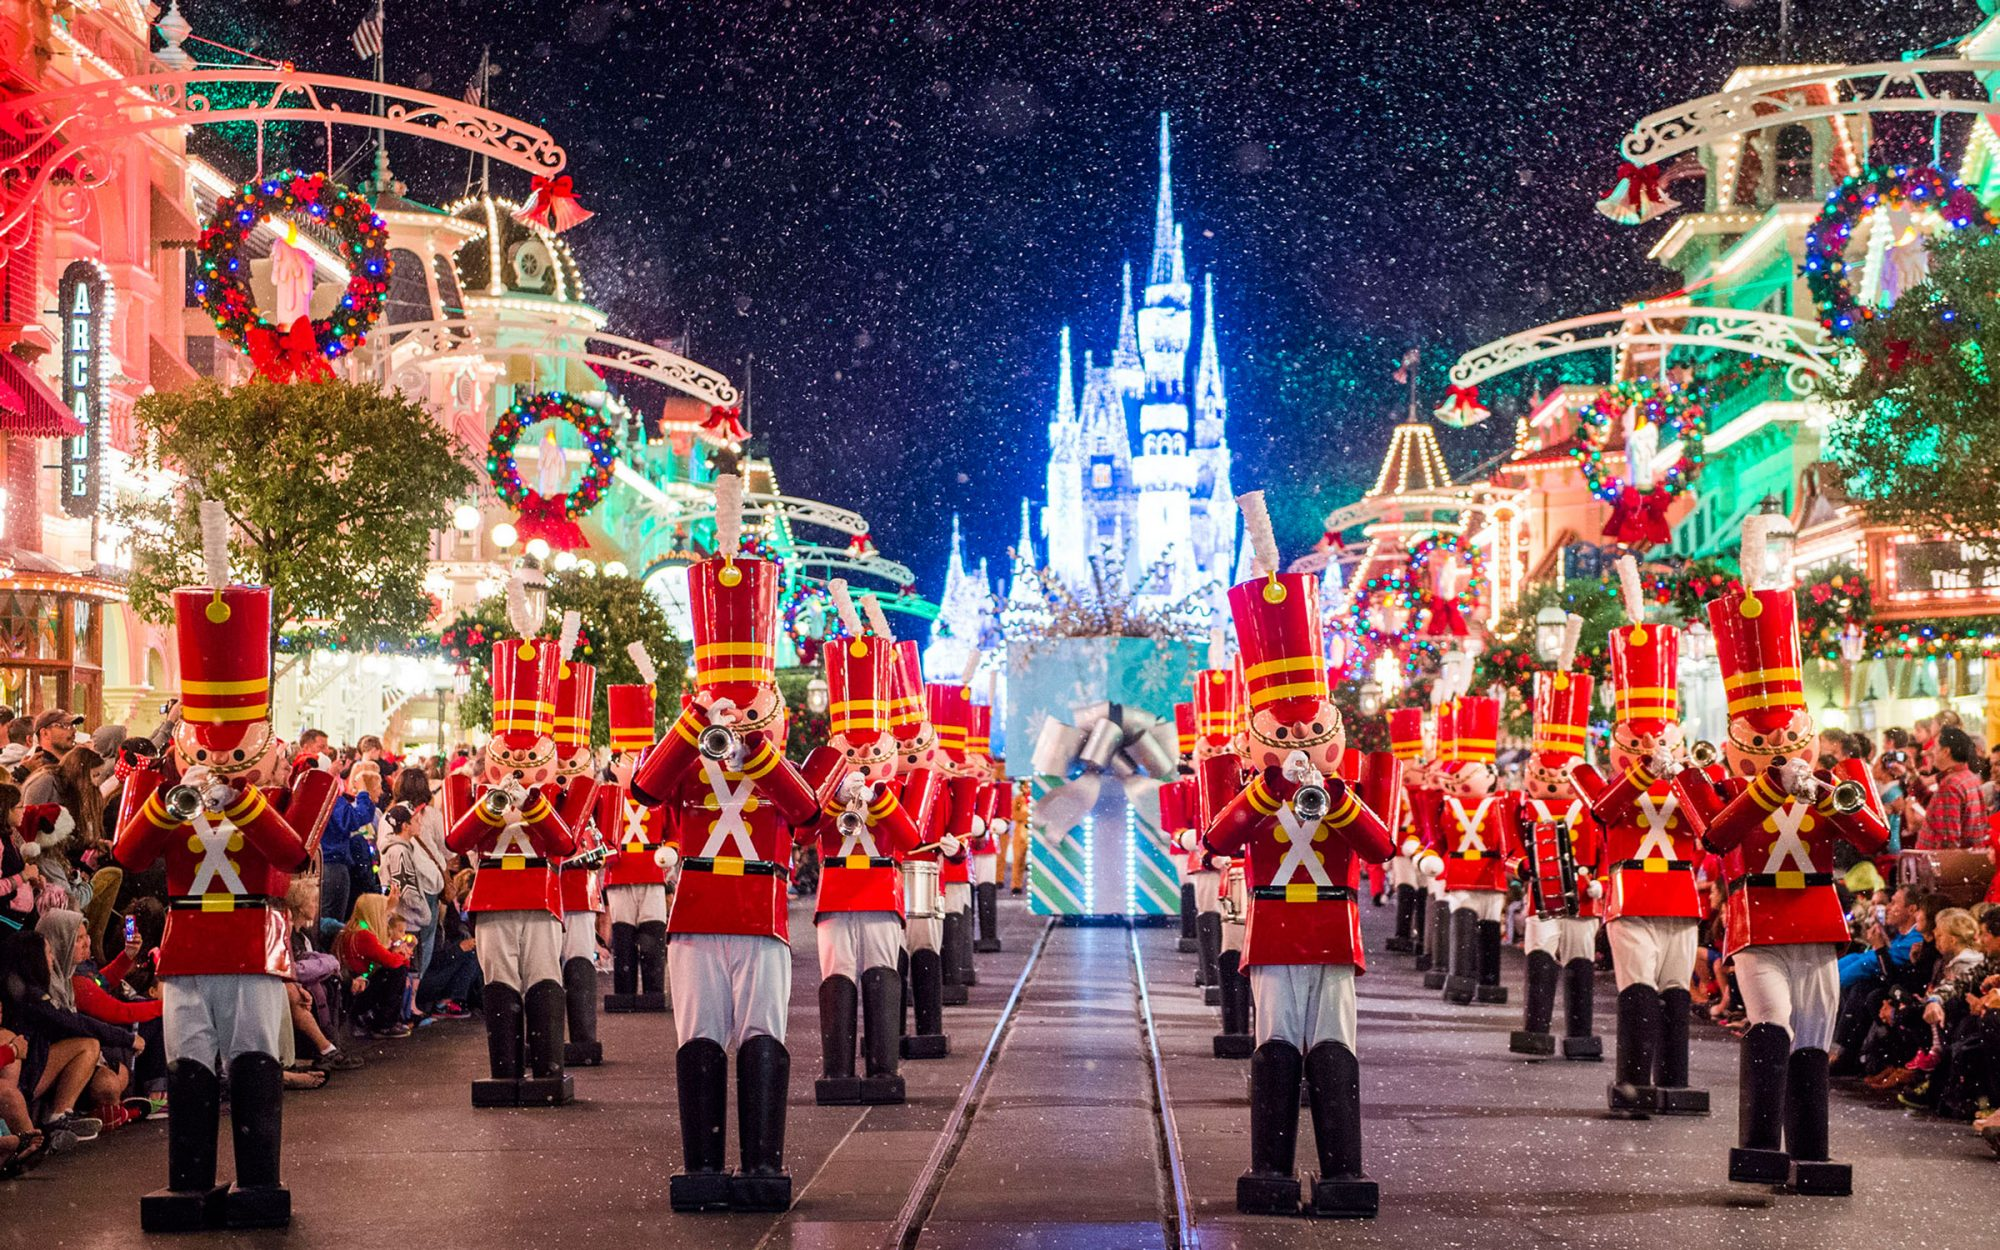 Disney Christmas Travel Tips: Consider Mickey's Very Merry Christmas Party